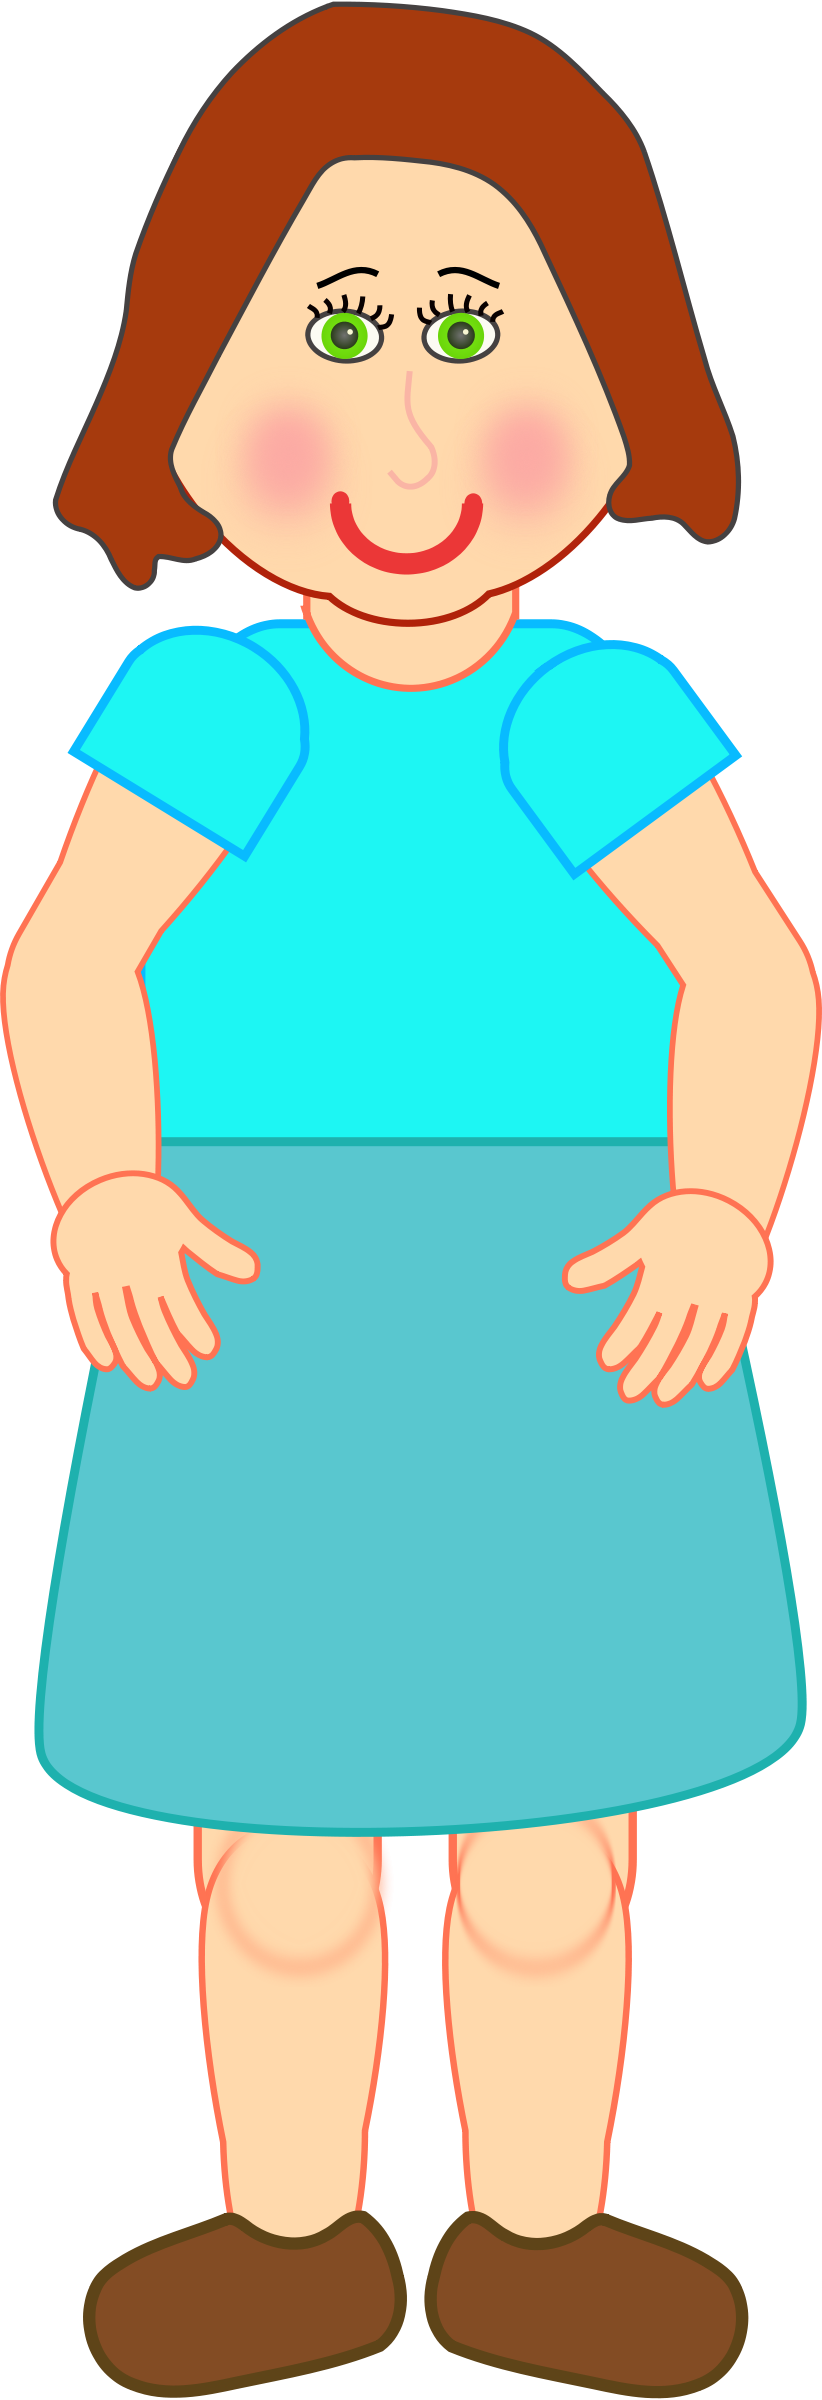 Girl clipart person. Woman standing